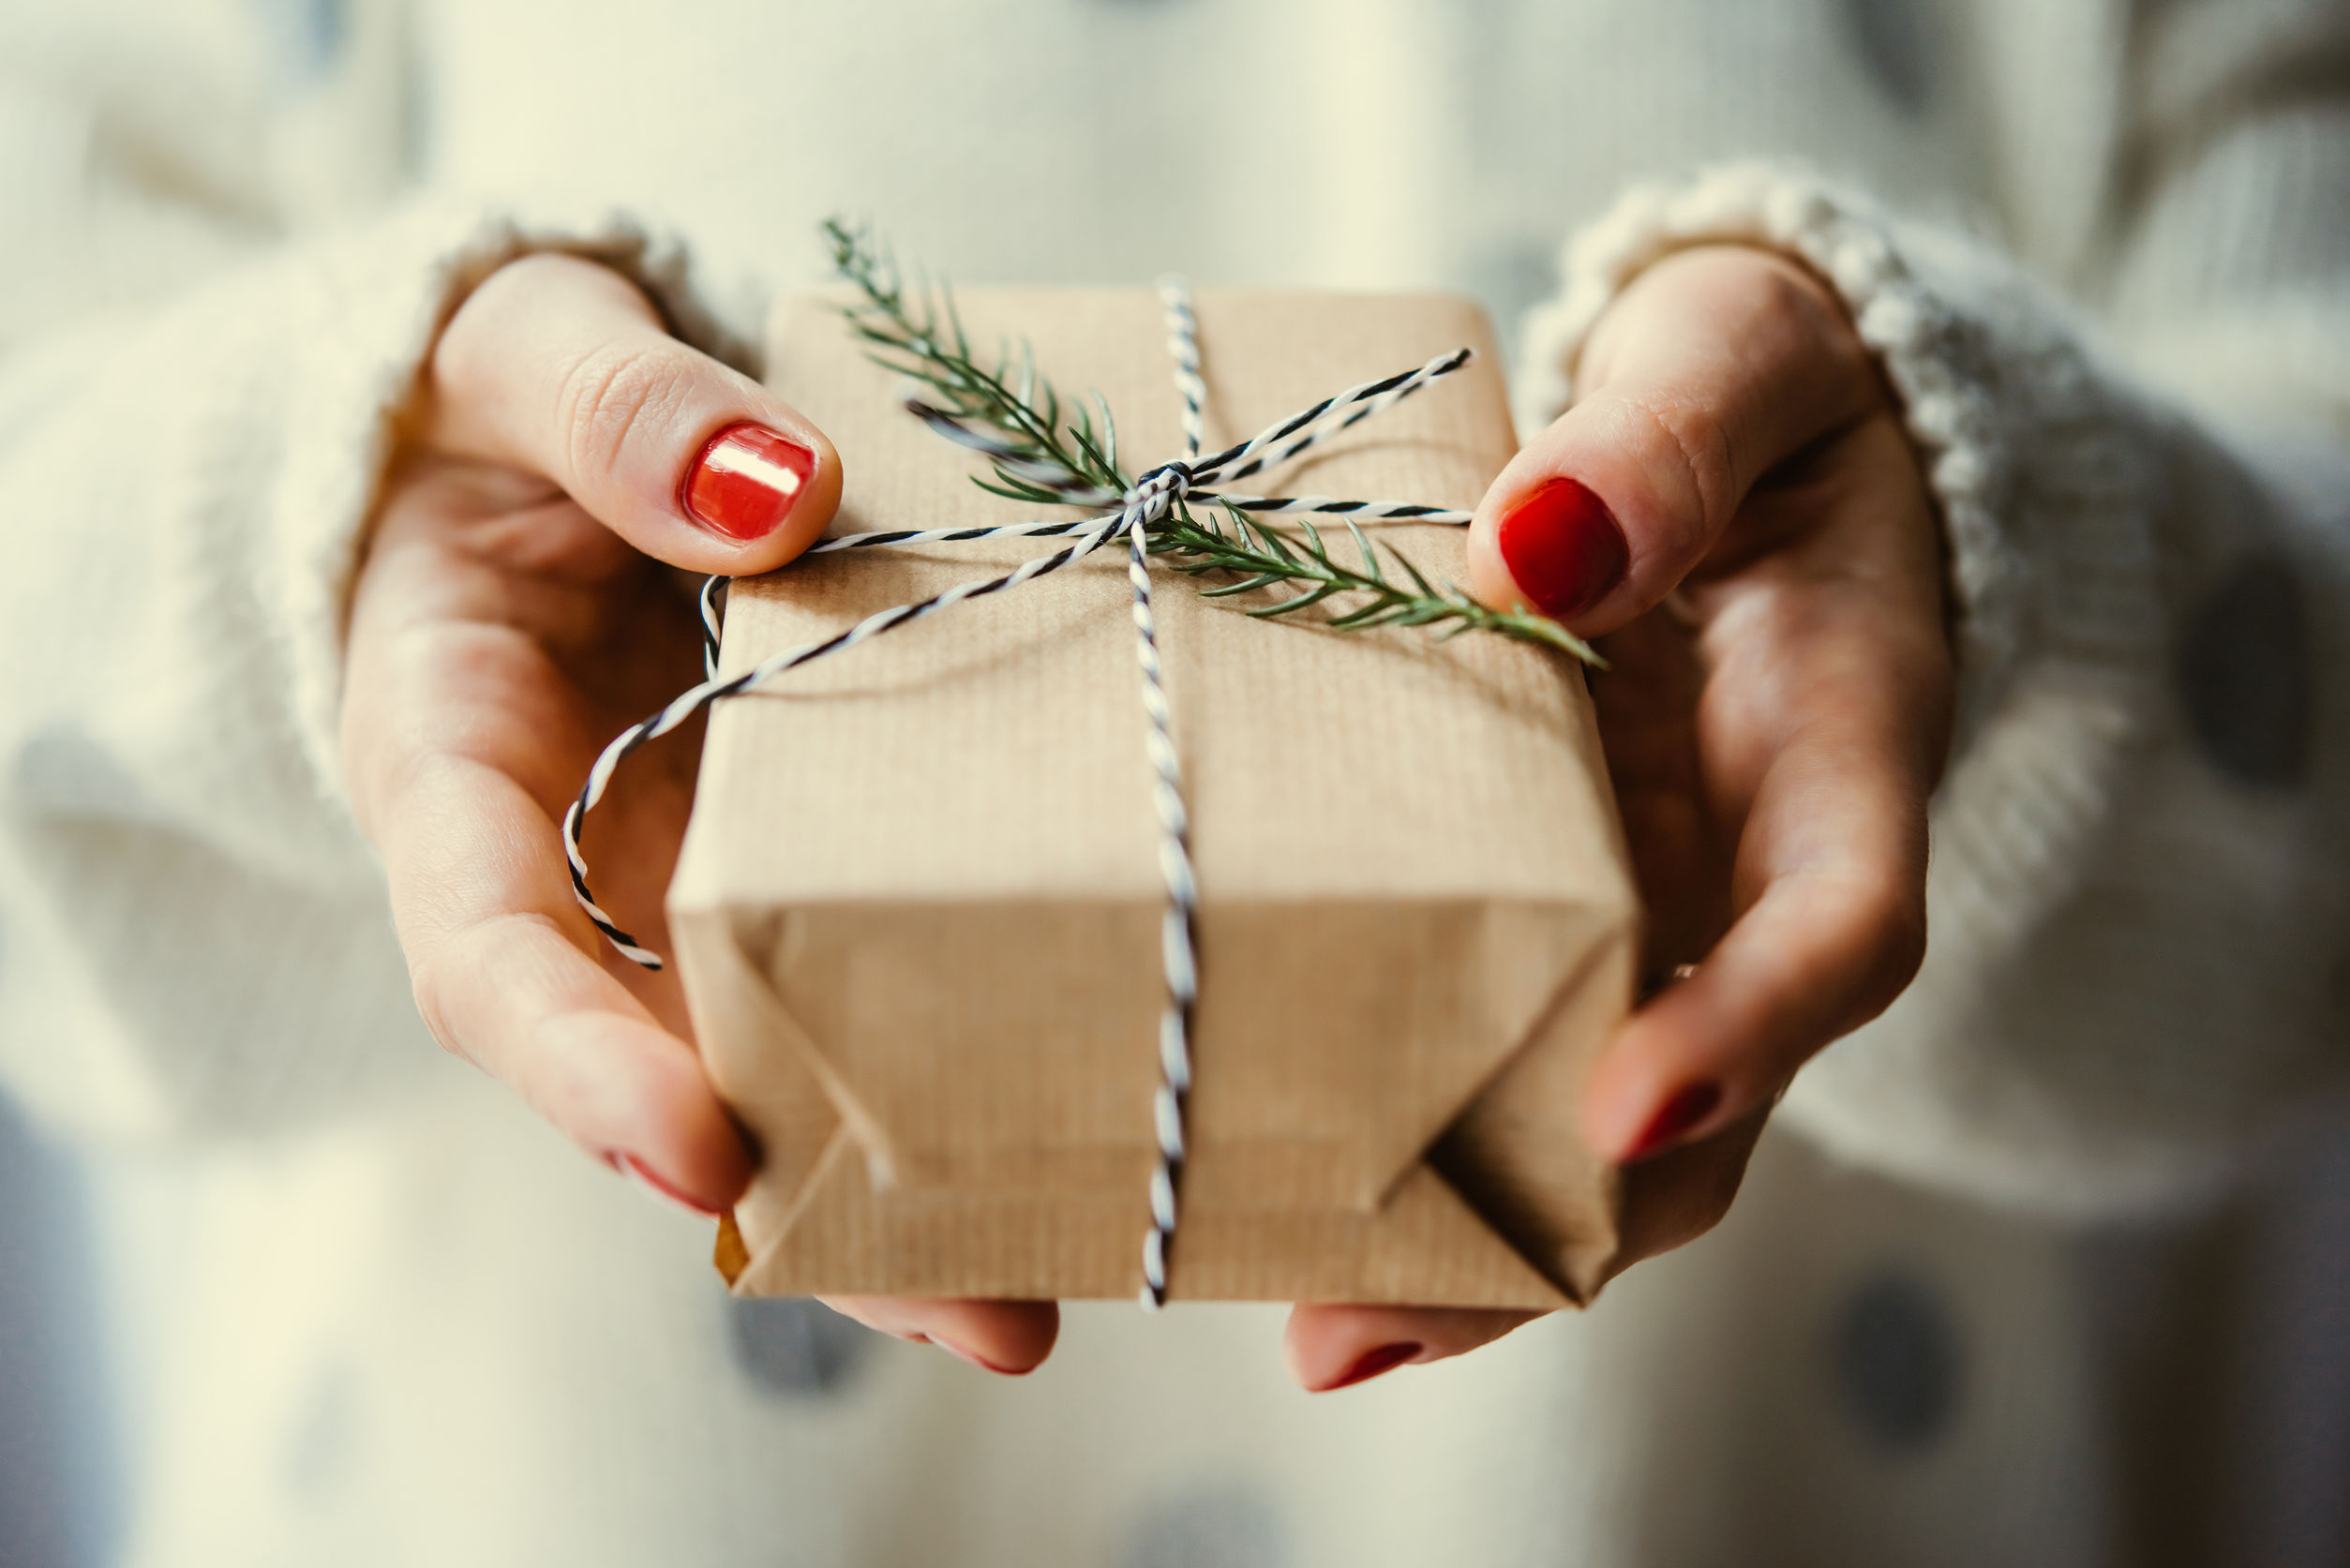 Workwise: Why we should all shop local this holiday season